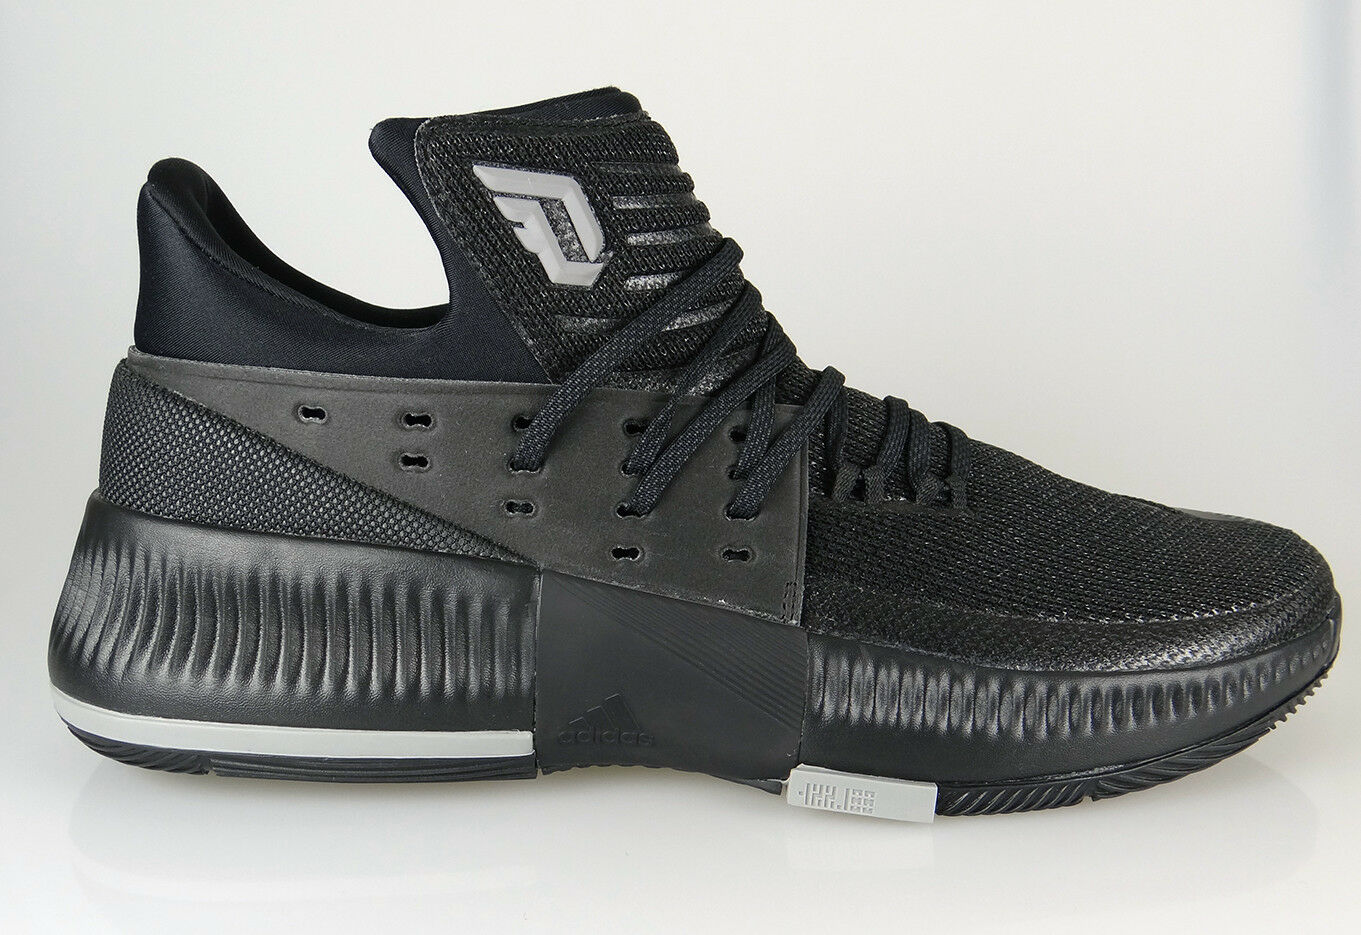 [BY3206] Mens Adidas Dame 3 Damian Lillard Basketball Sneaker - Black